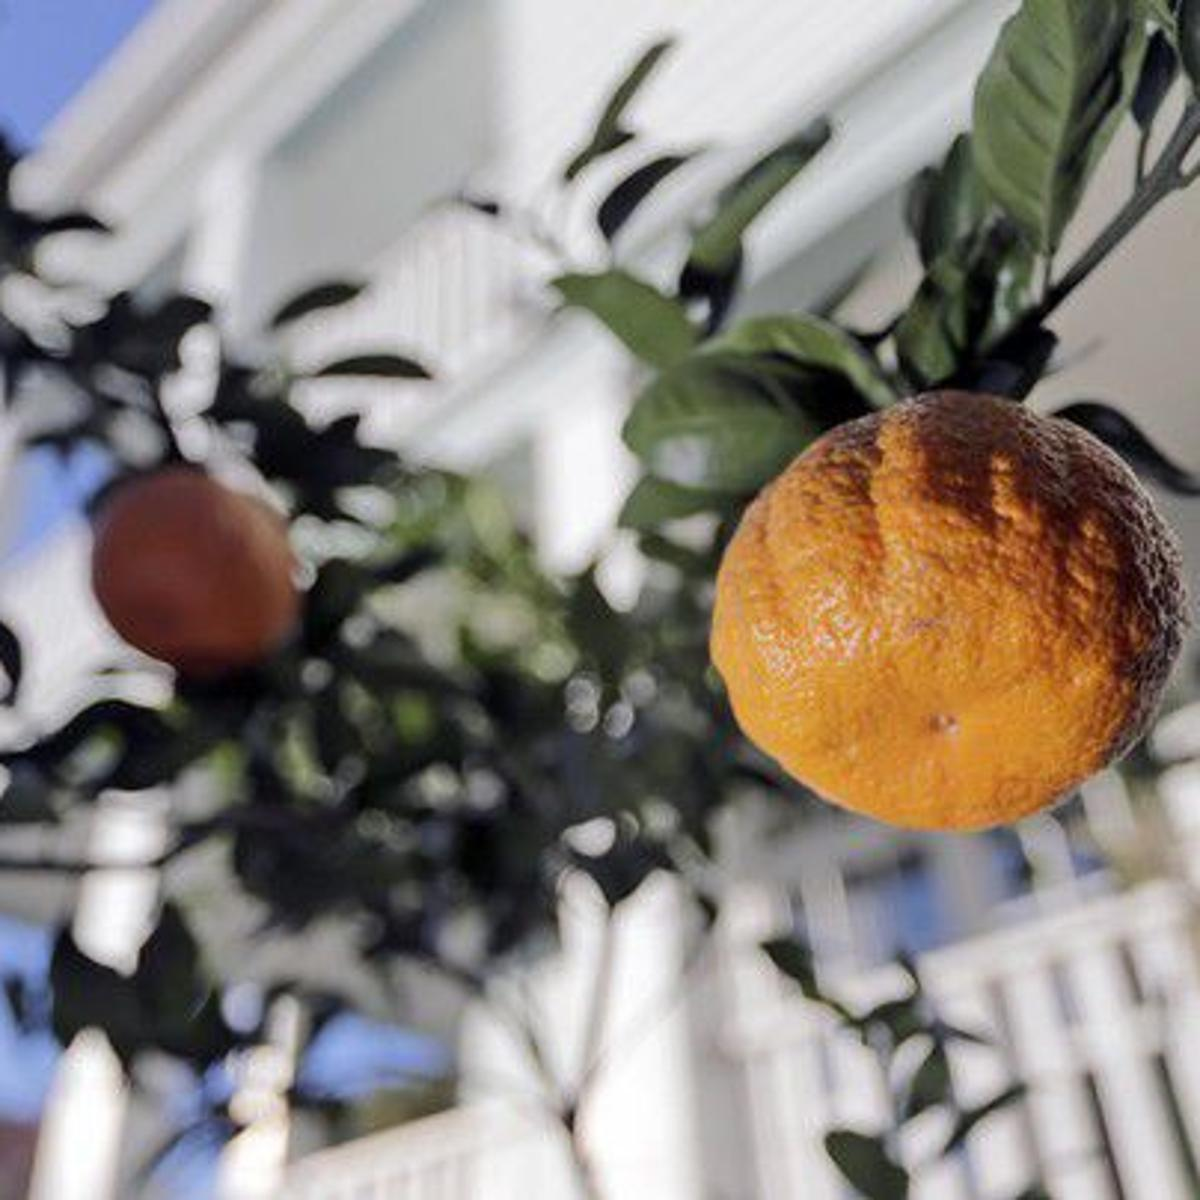 New Orleans is getting 300 public fruit trees for its